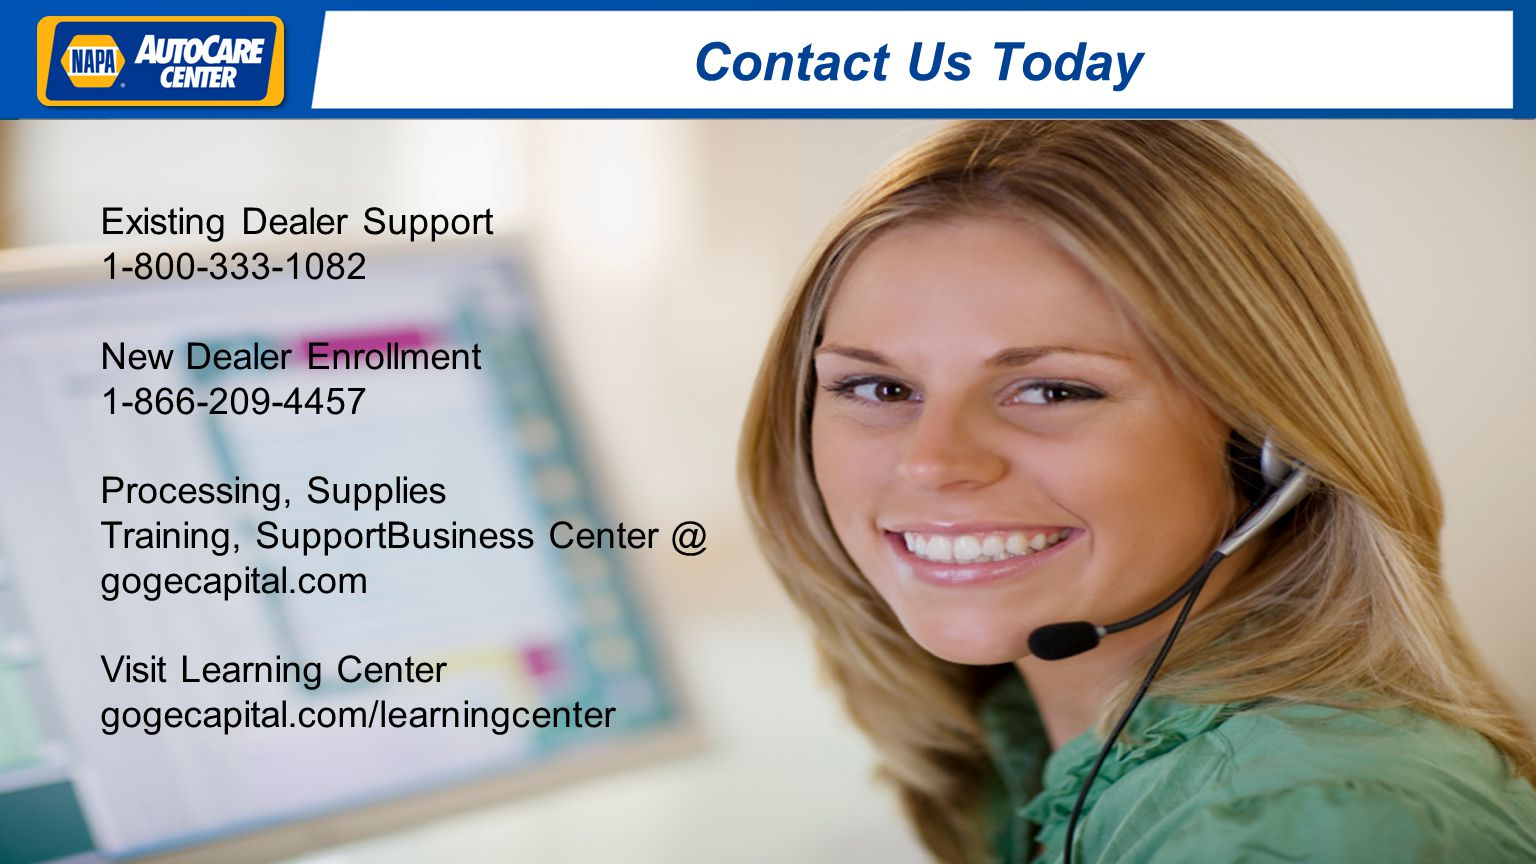 Contact Us Today Existing Dealer Support 1-800-333-1082 New Dealer Enrollment 1-866-209-4457 Processing, Supplies Training, SupportBusiness Center @ g